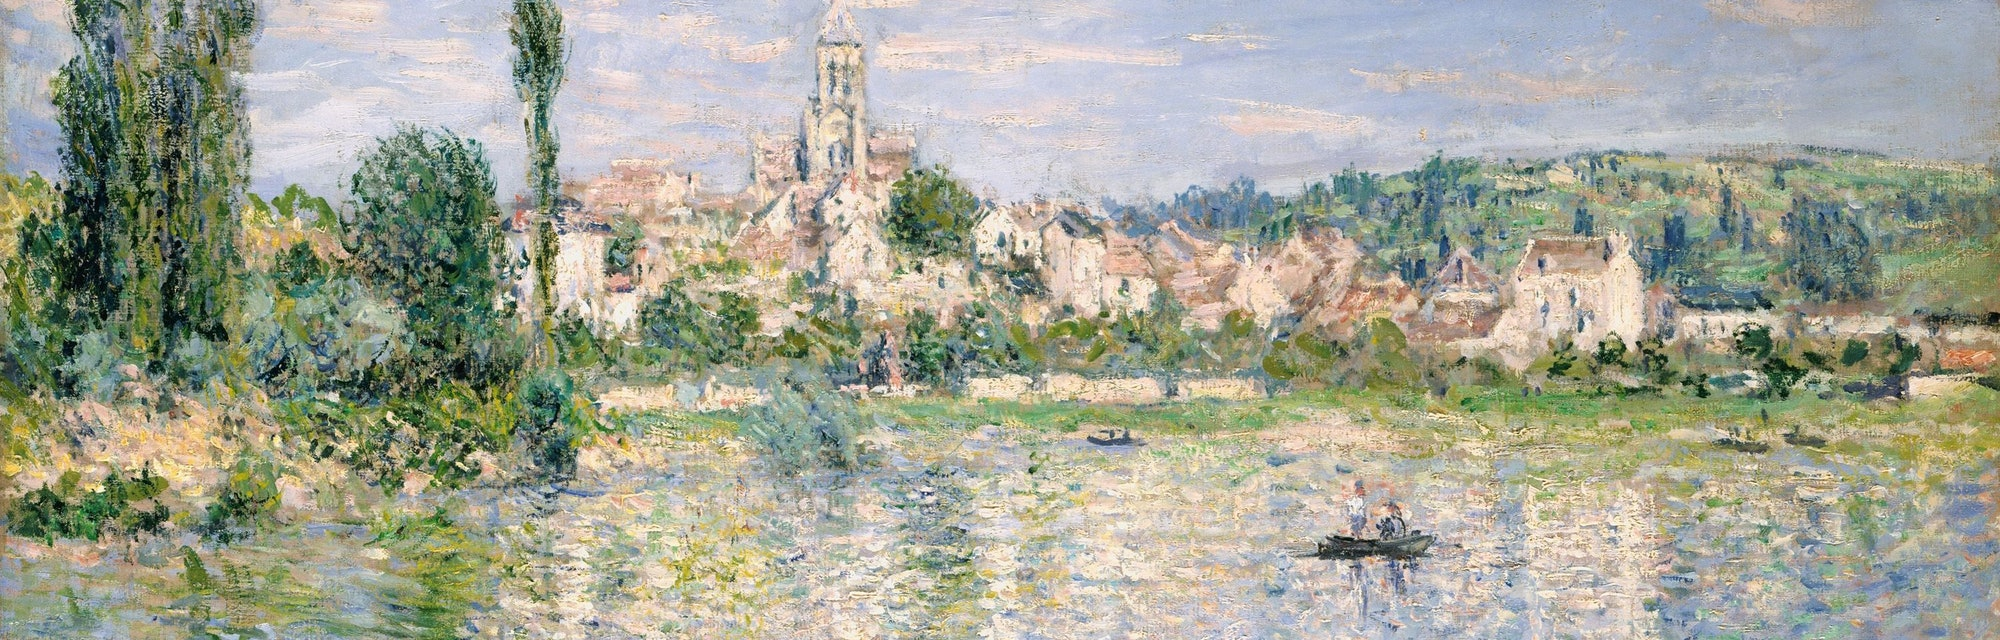 Vetheuil in Summer, by Claude Monet, 1880, French impressionist painting, oil on canvas. This painting creates the illusion of flickering reflections of sunlight on the water